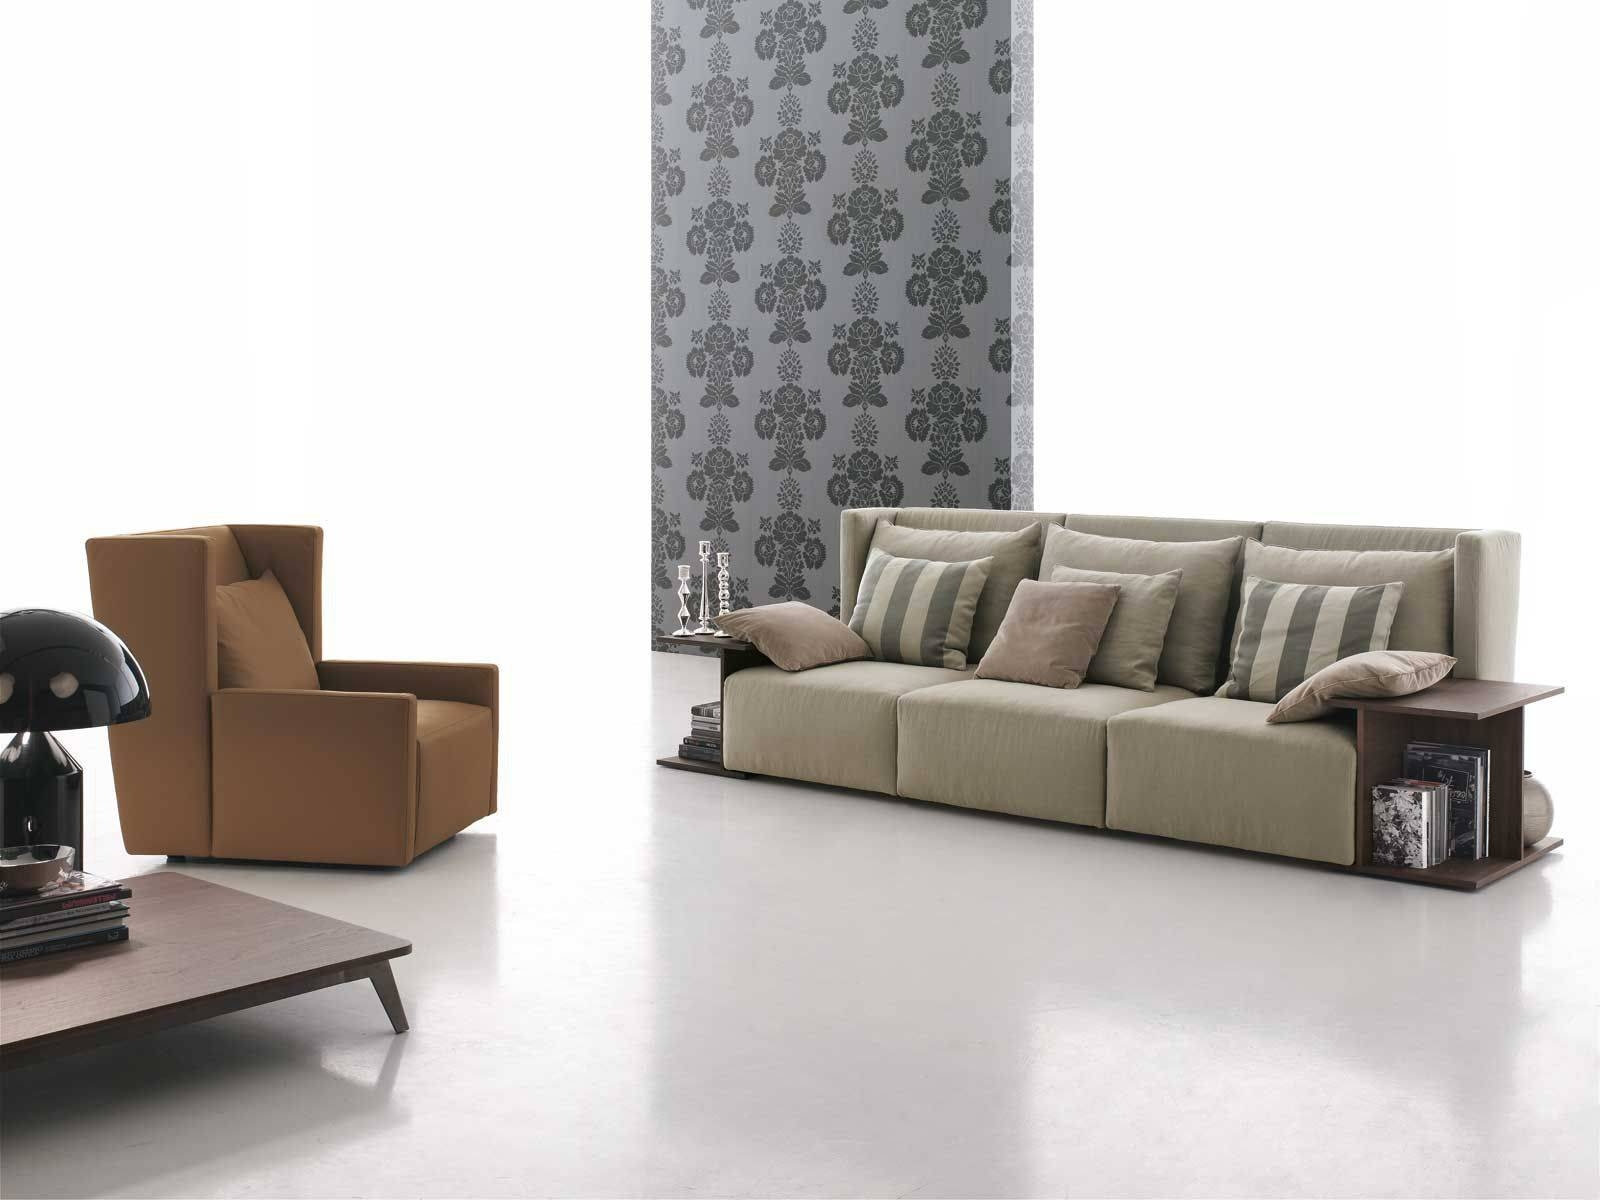 Modular Sofa / Contemporary / Fabric / 3-Seater - Club - Gruppo intended for Contemporary Fabric Sofas (Image 15 of 30)